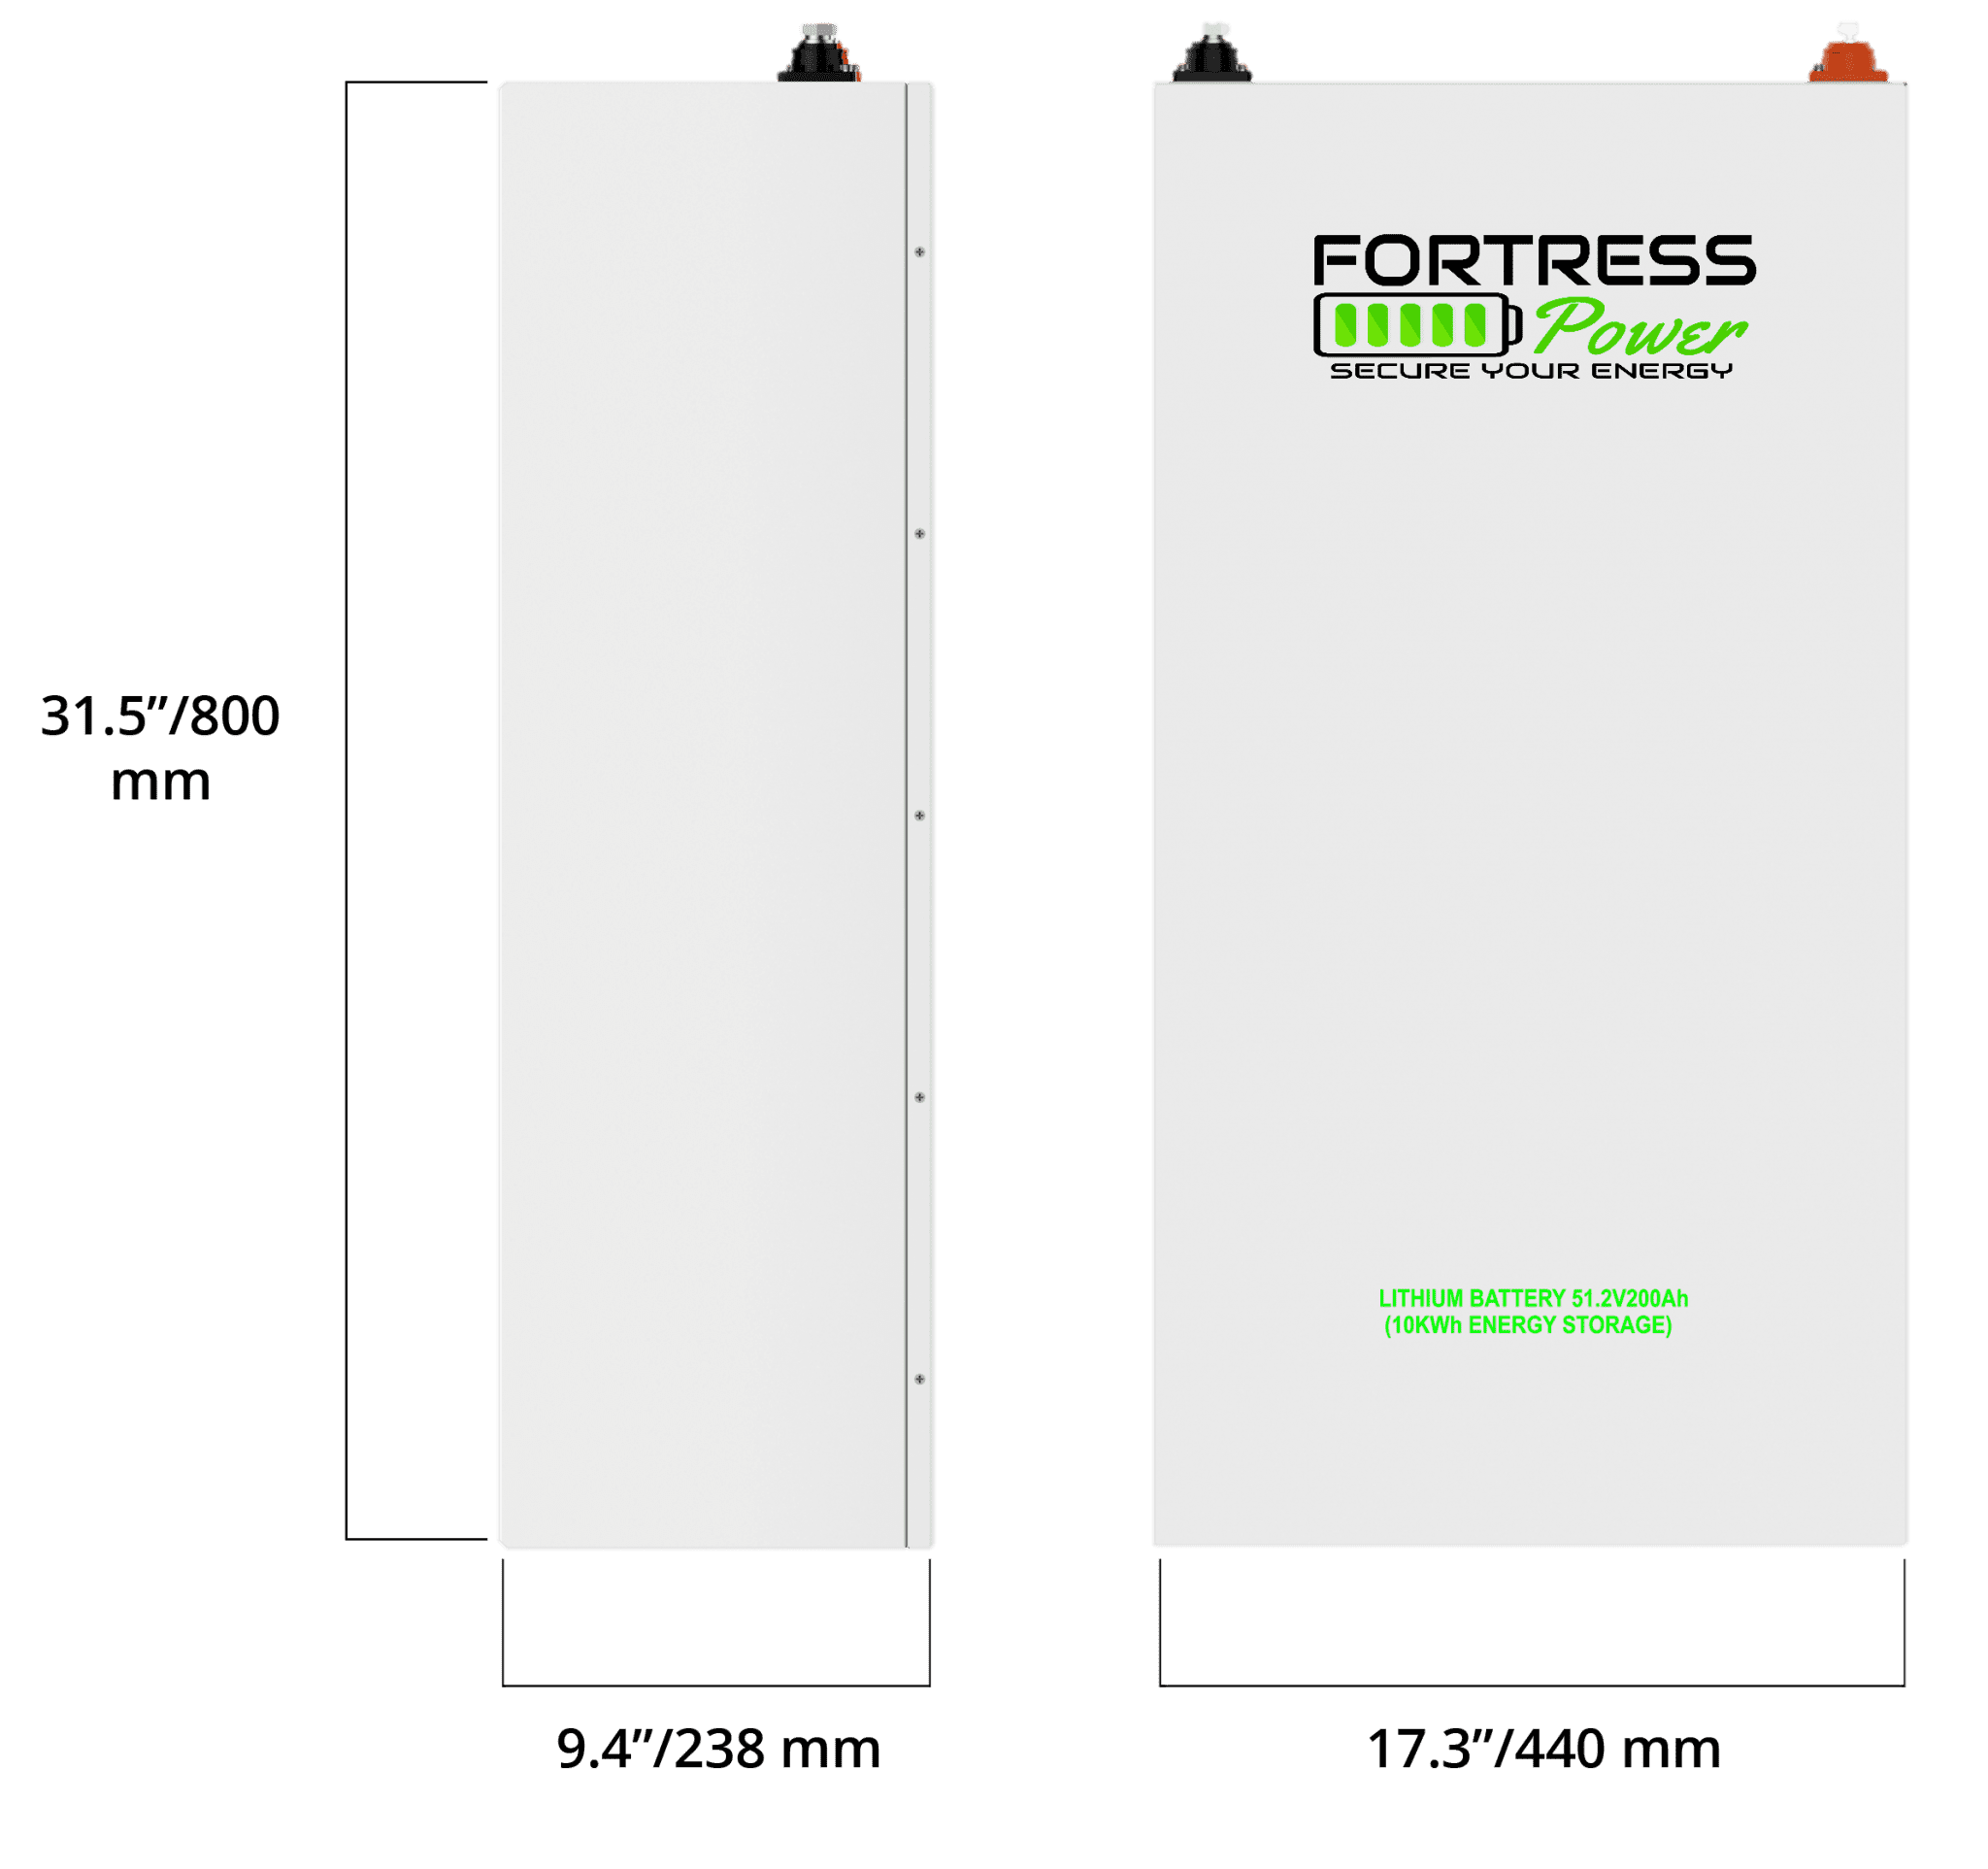 fortress battery specs updated